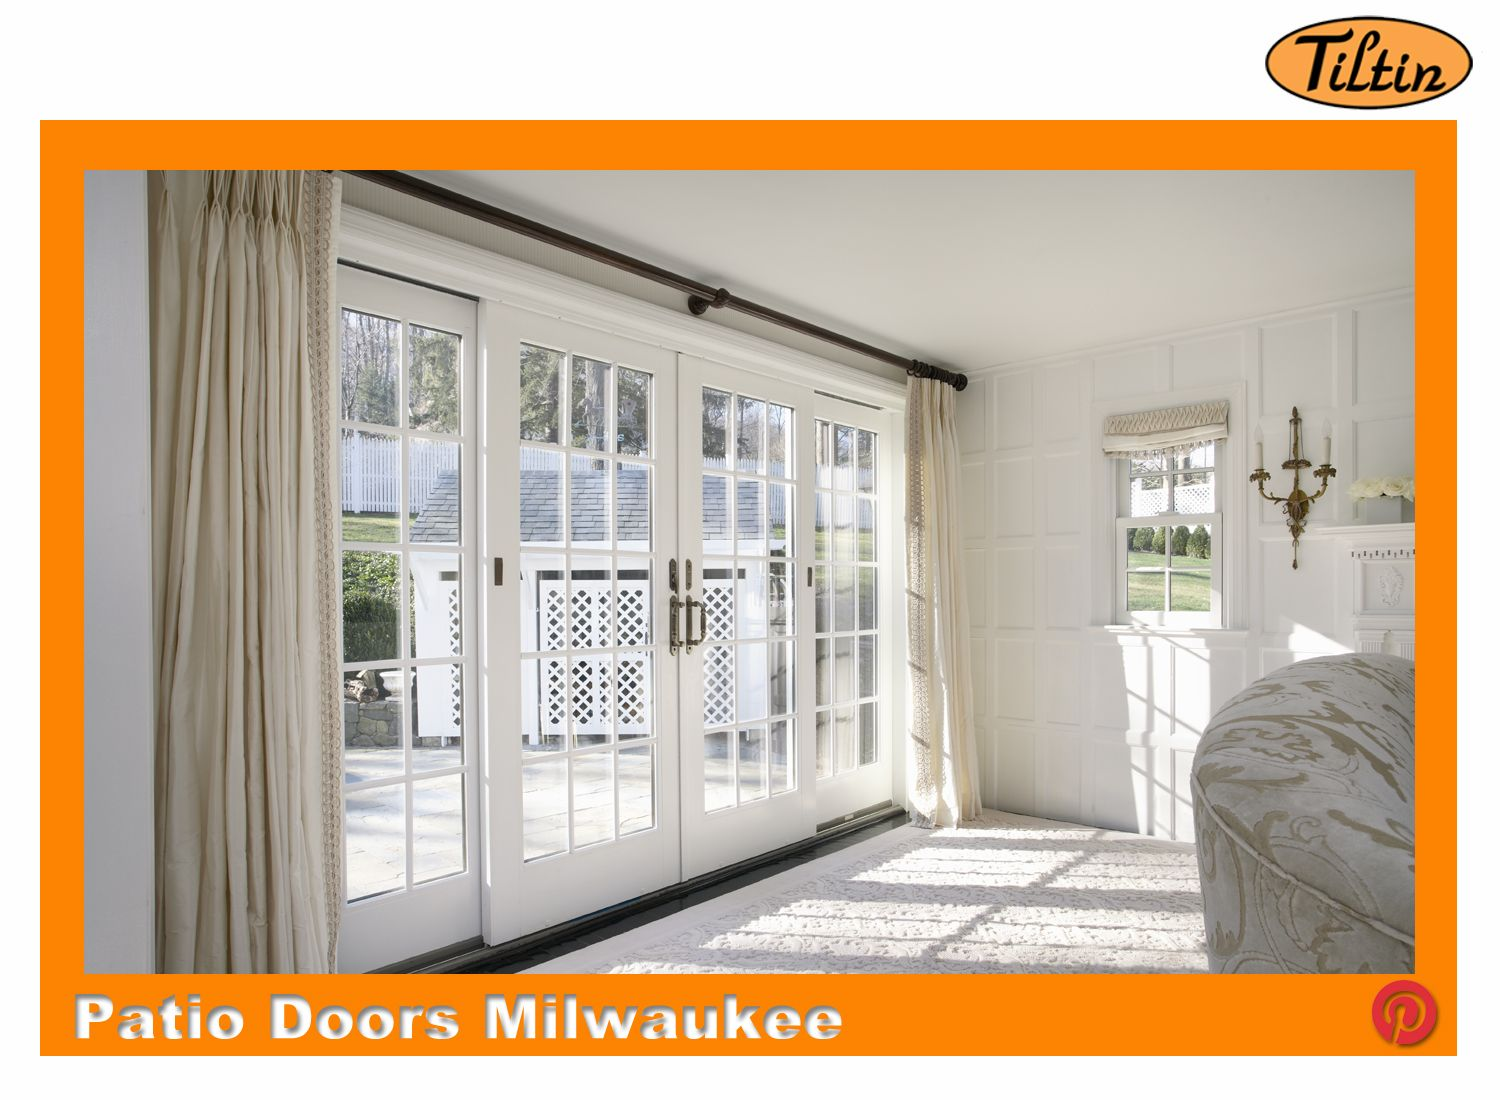 WindowsMilwaukeeReplacement Patio Doors Milwaukee | Patio Doors ...